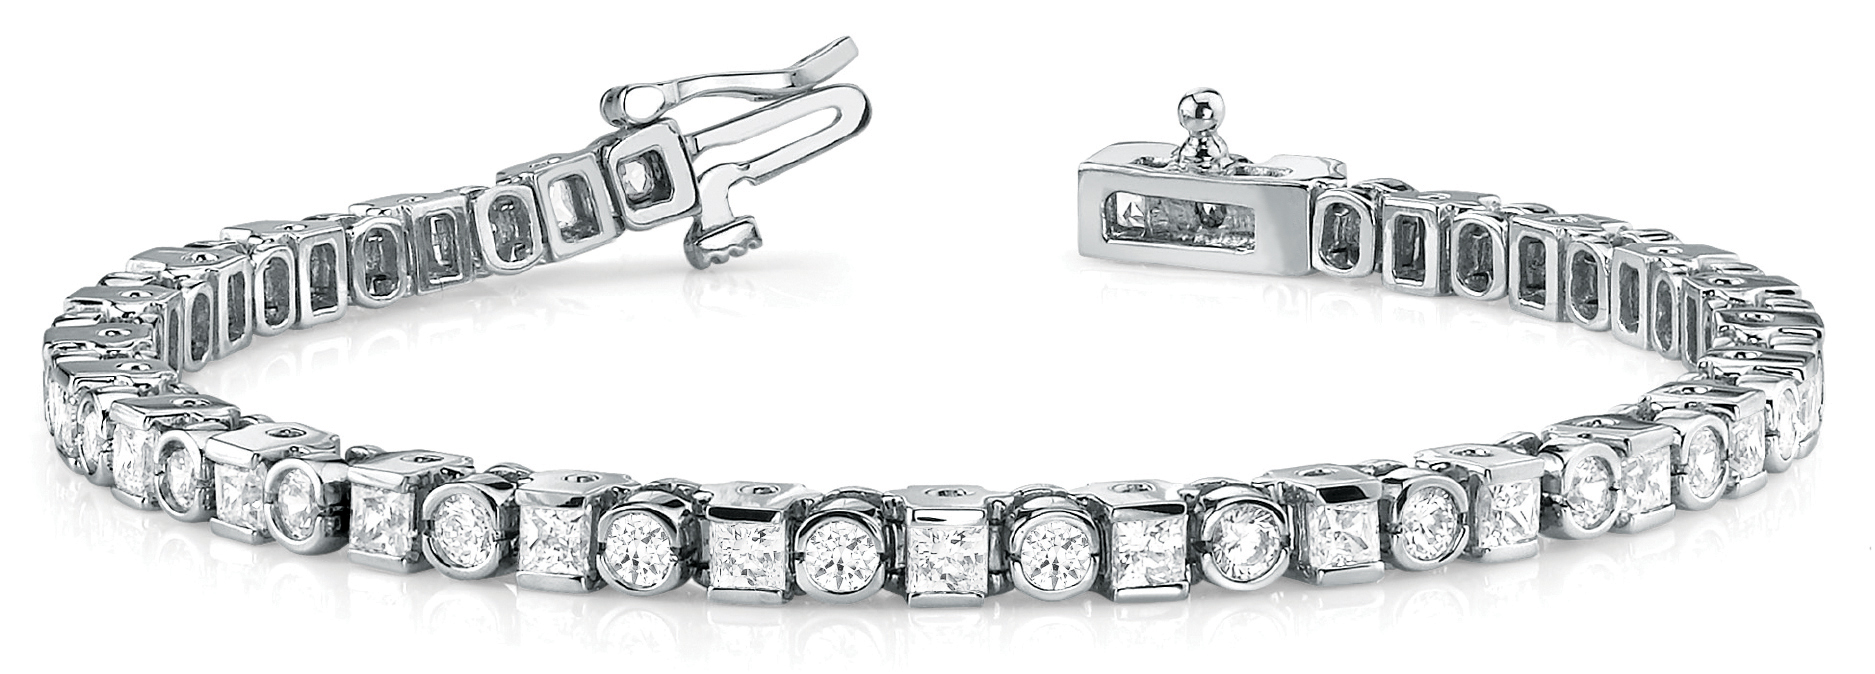 4.05 Ct Round & Princess Diamond Bar and Bezel Tennis Bracelet